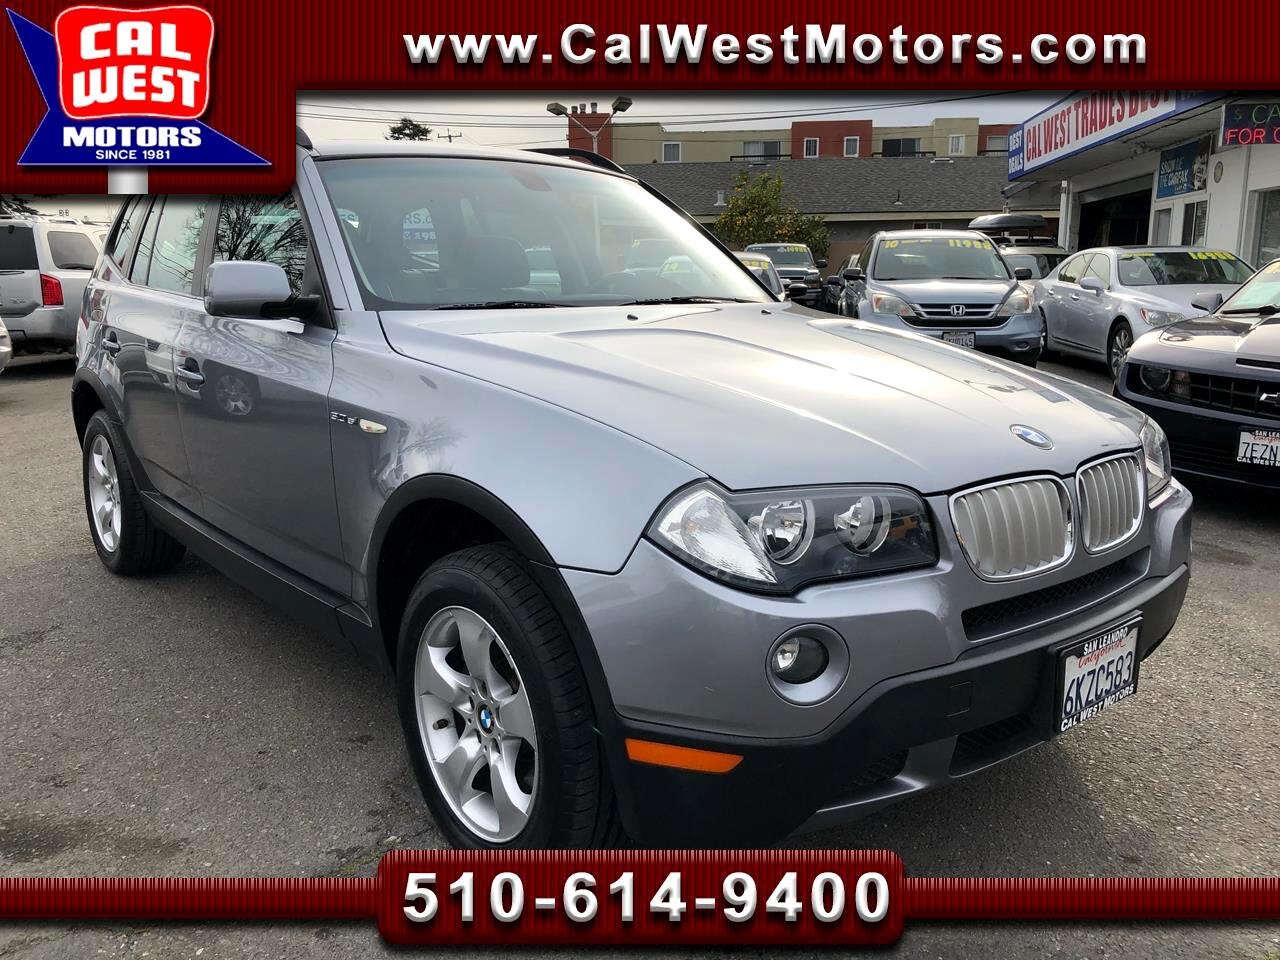 2008 BMW X3 AWD 3.0 Si Premium Blu2th Only42k VeryClean ExMtnc